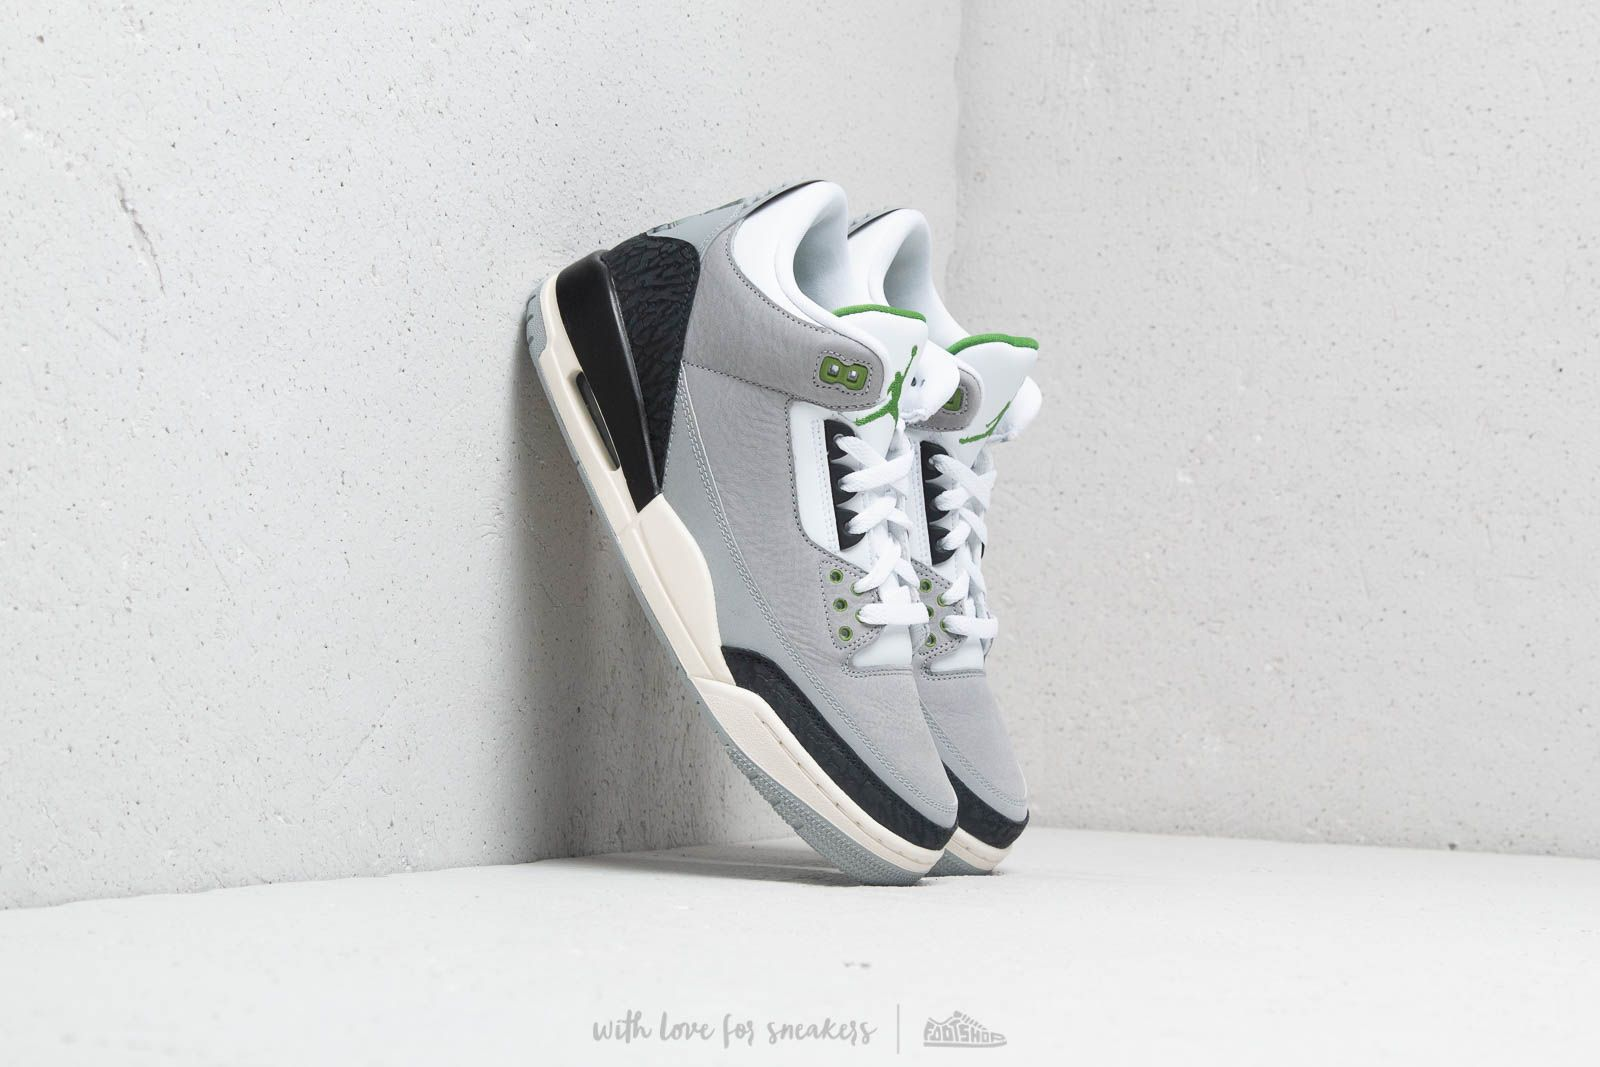 f0e24ac4 Air Jordan 3 Retro Lt Smoke Grey/ Chlorophyll at a great price 134 € buy